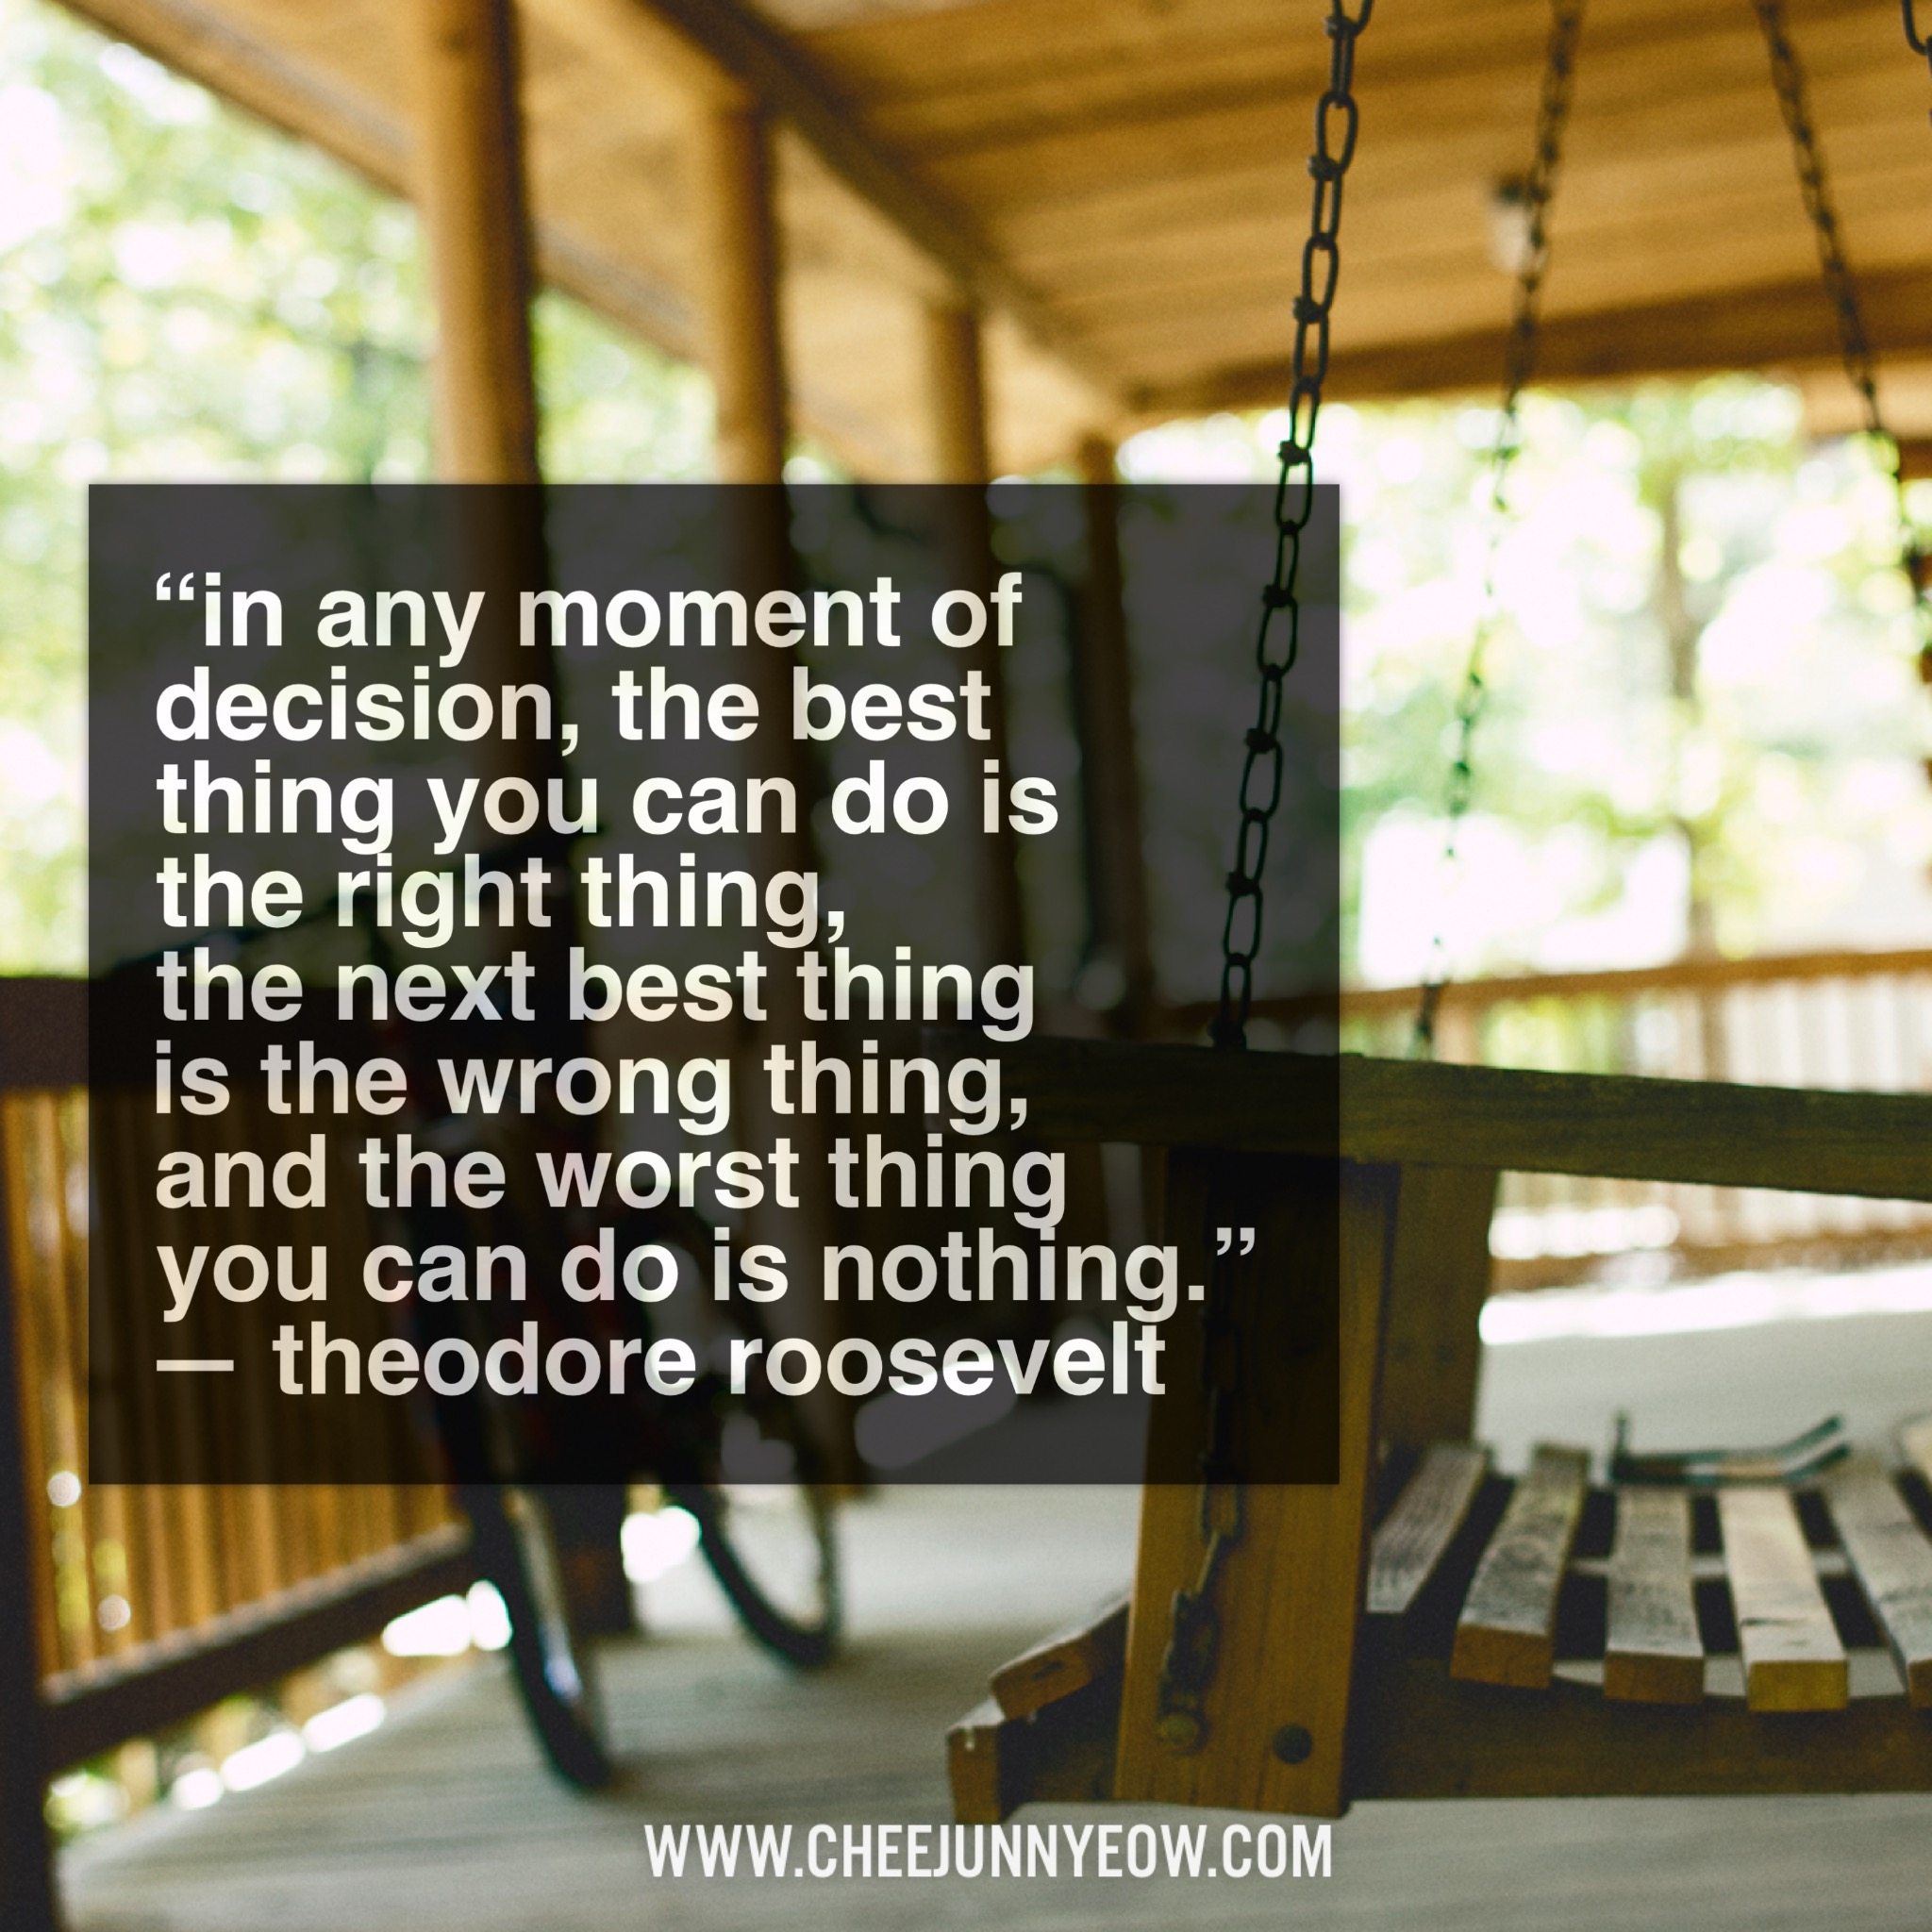 in any moment of decision, the best thing you can is the right thing.